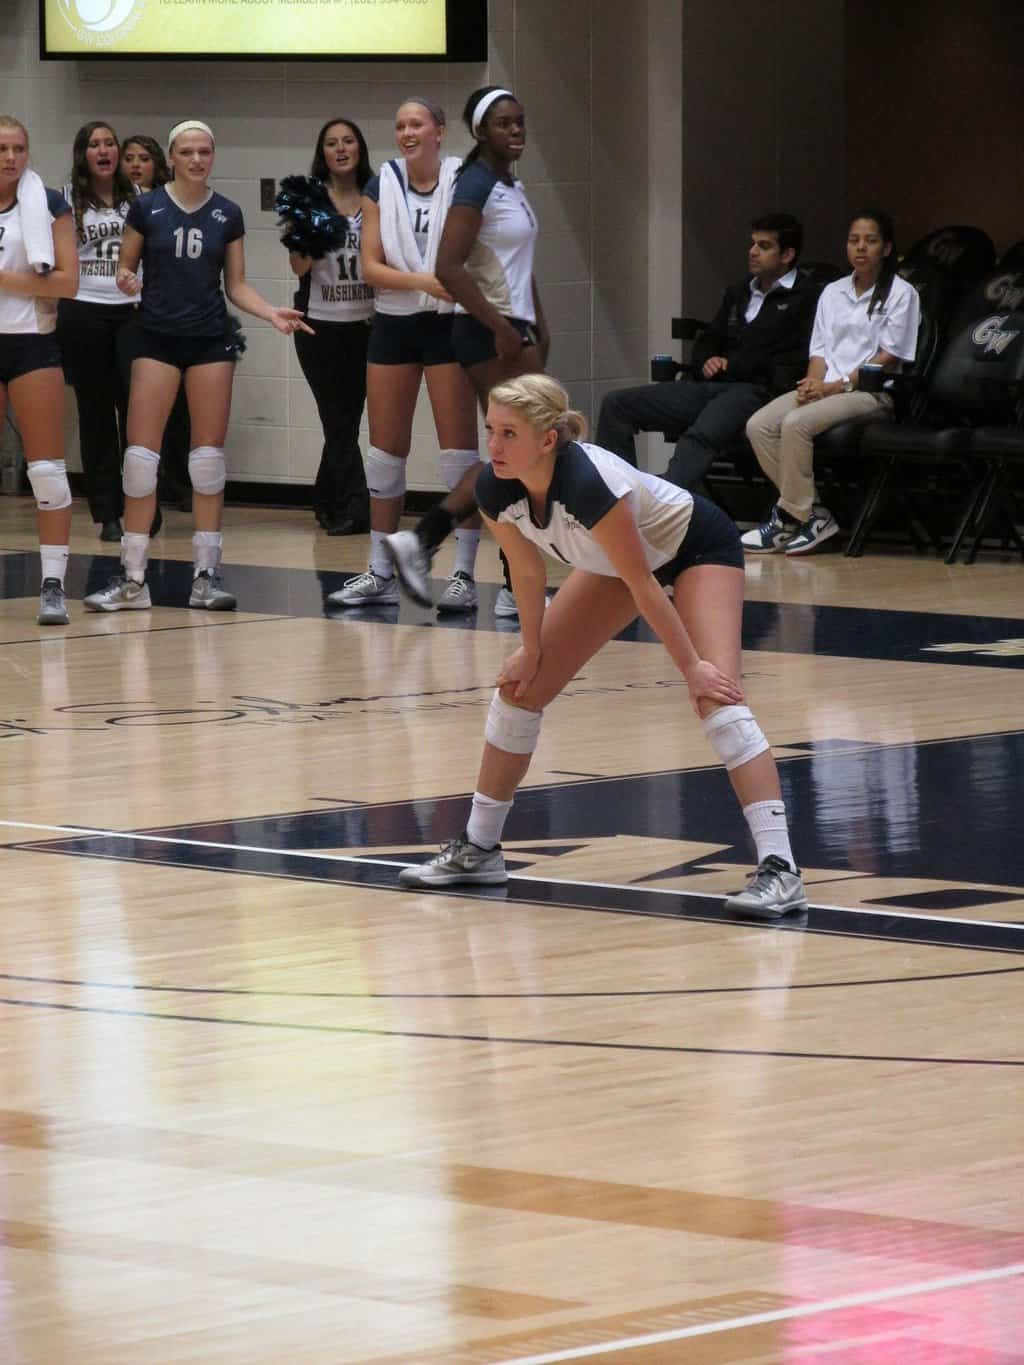 Volleyball player with hands on her knees